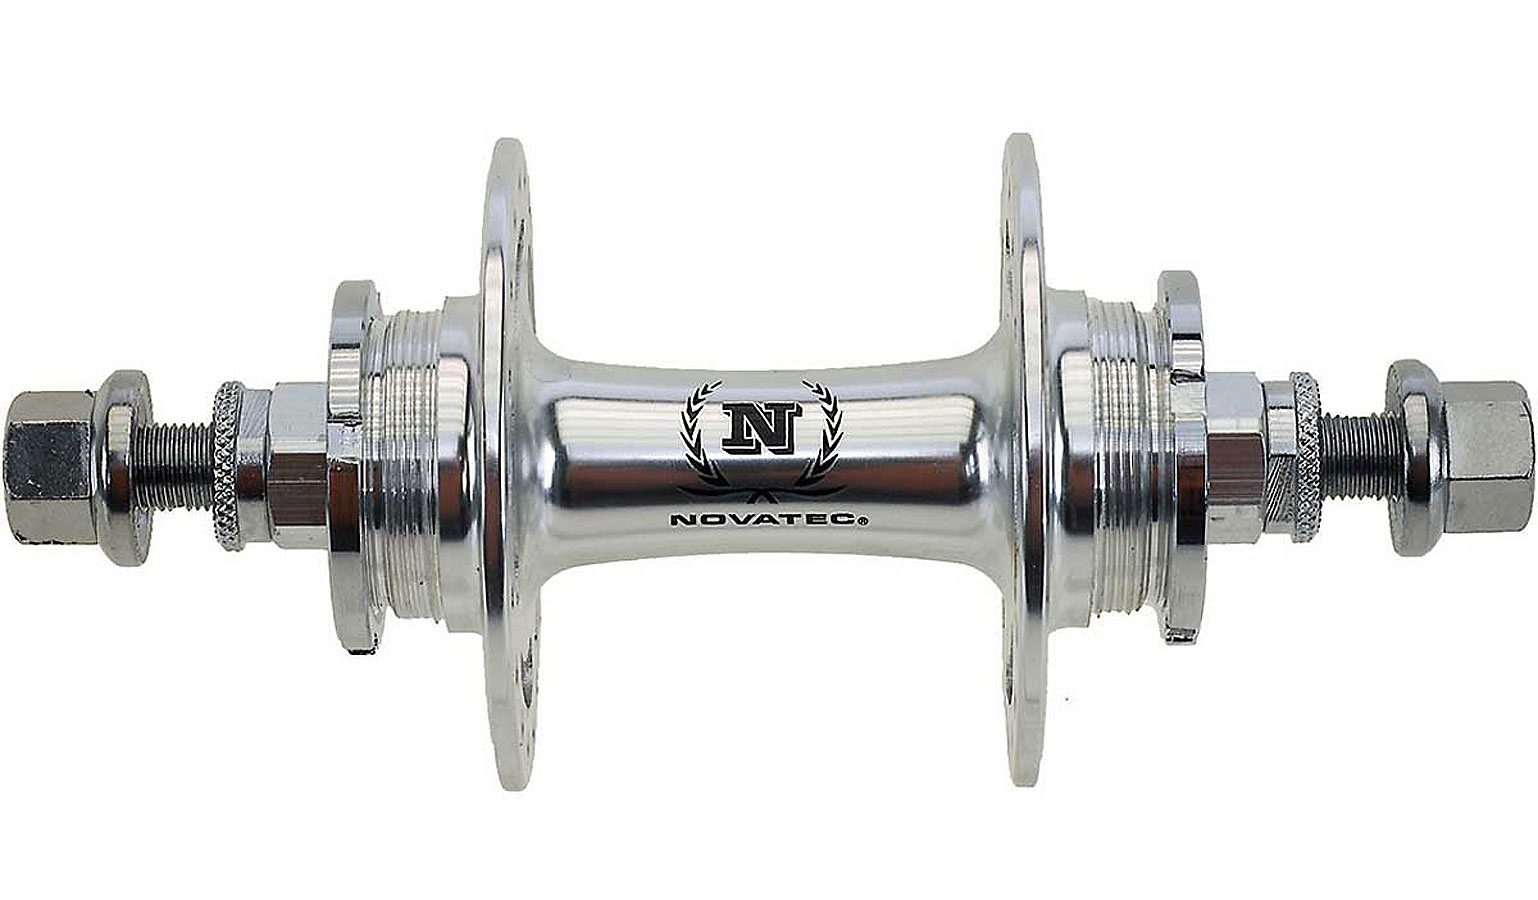 Novatec Nabe »Single Speed«